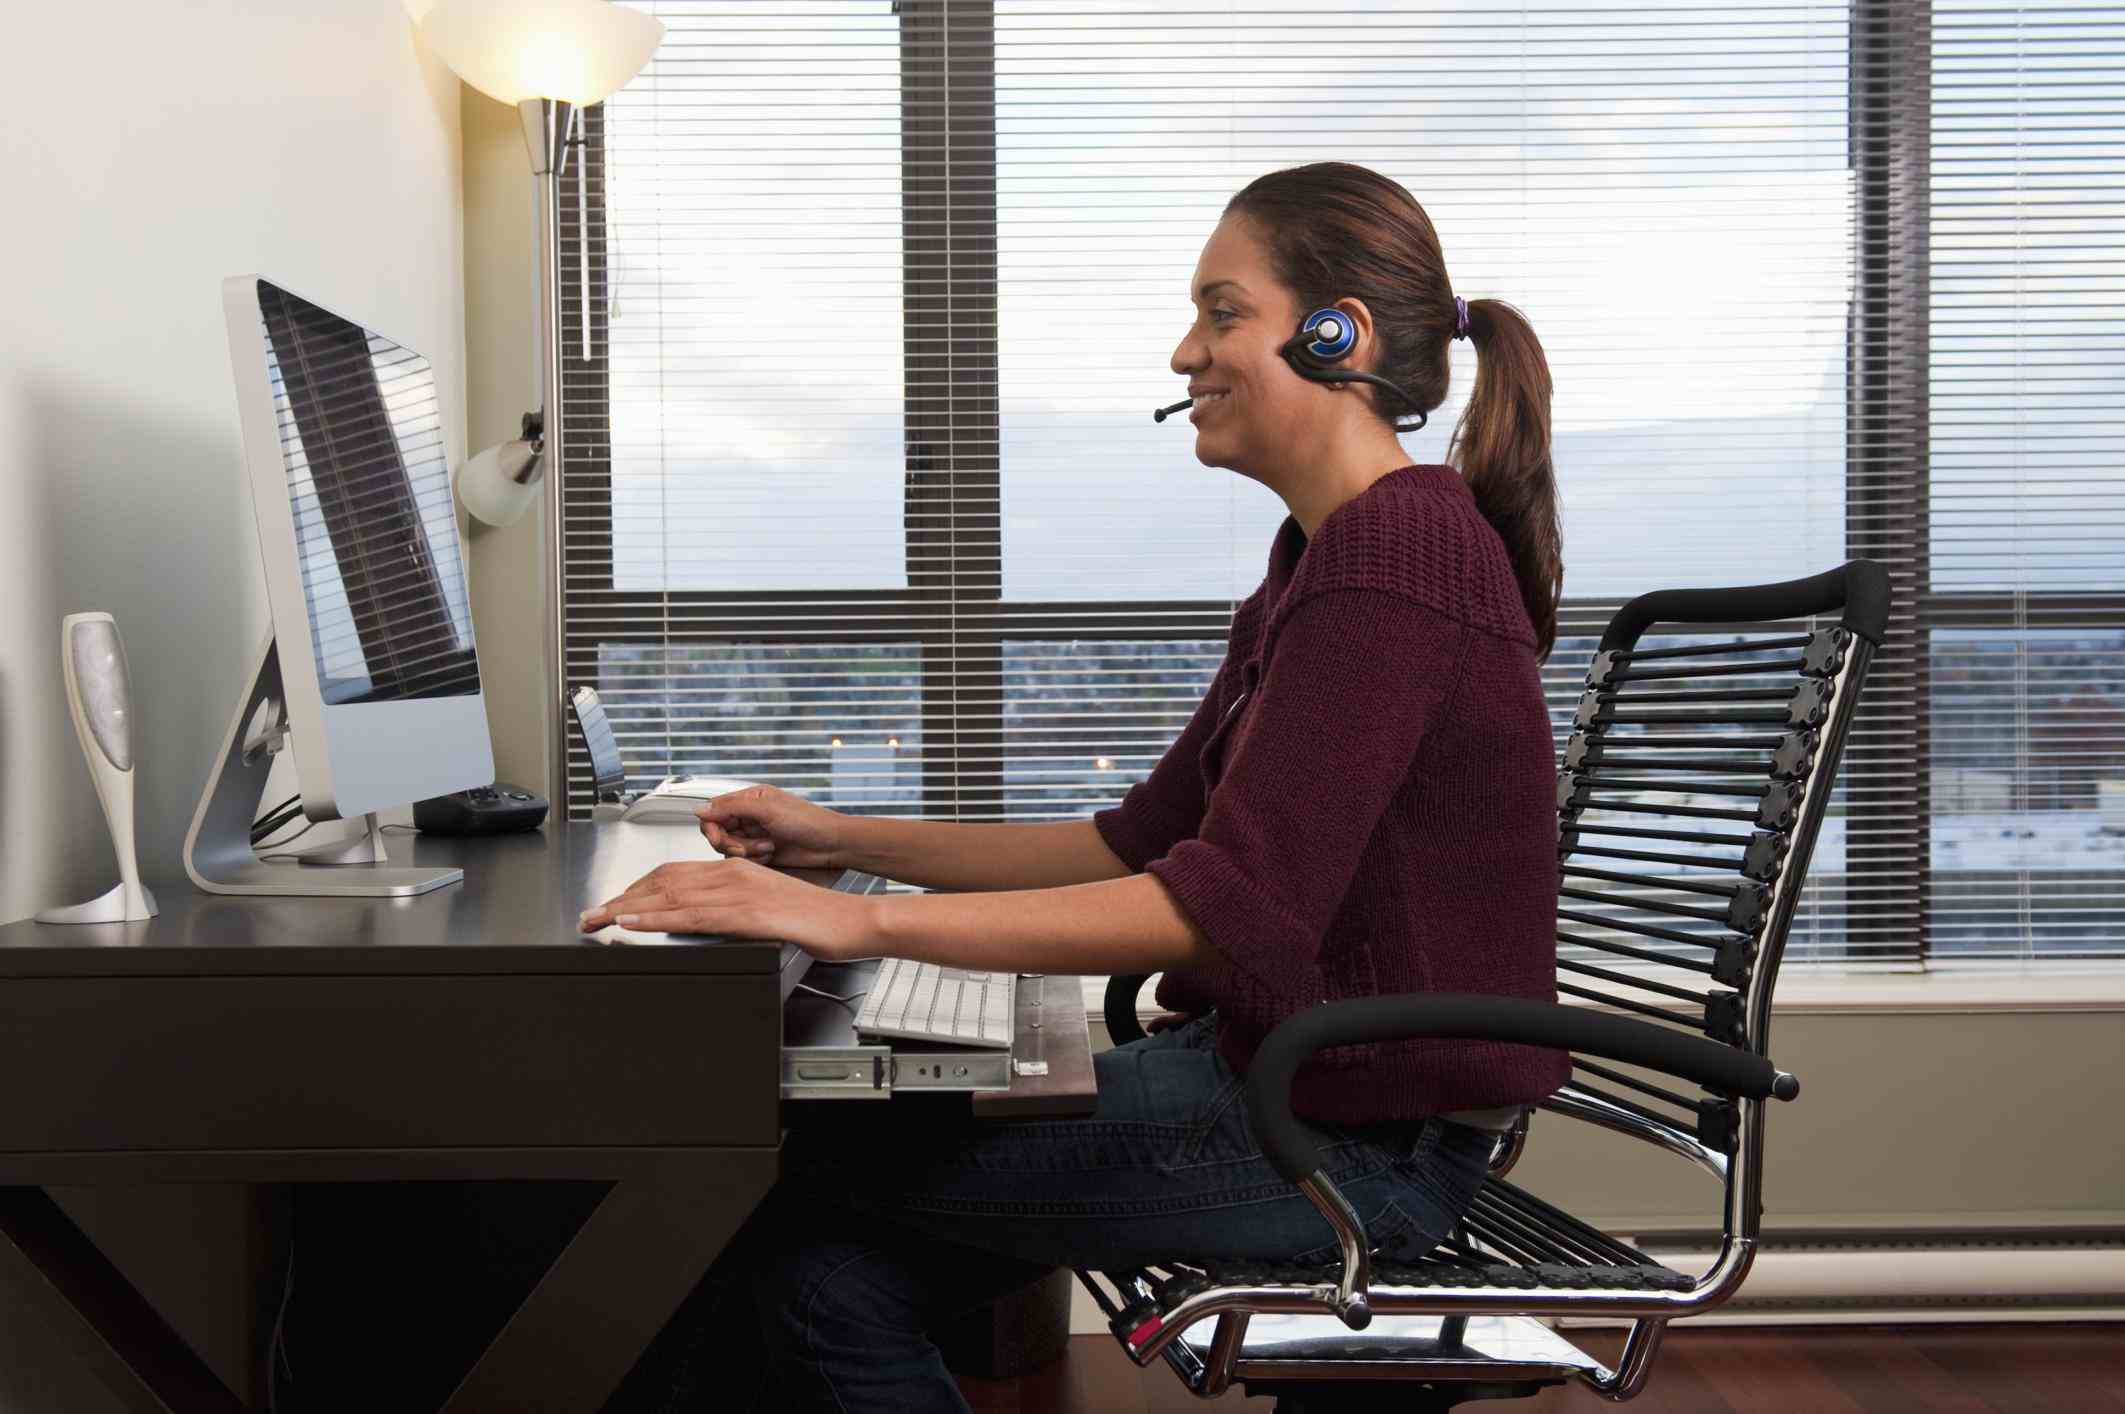 Call center employee working from their apartment sitting at a desk by a window.